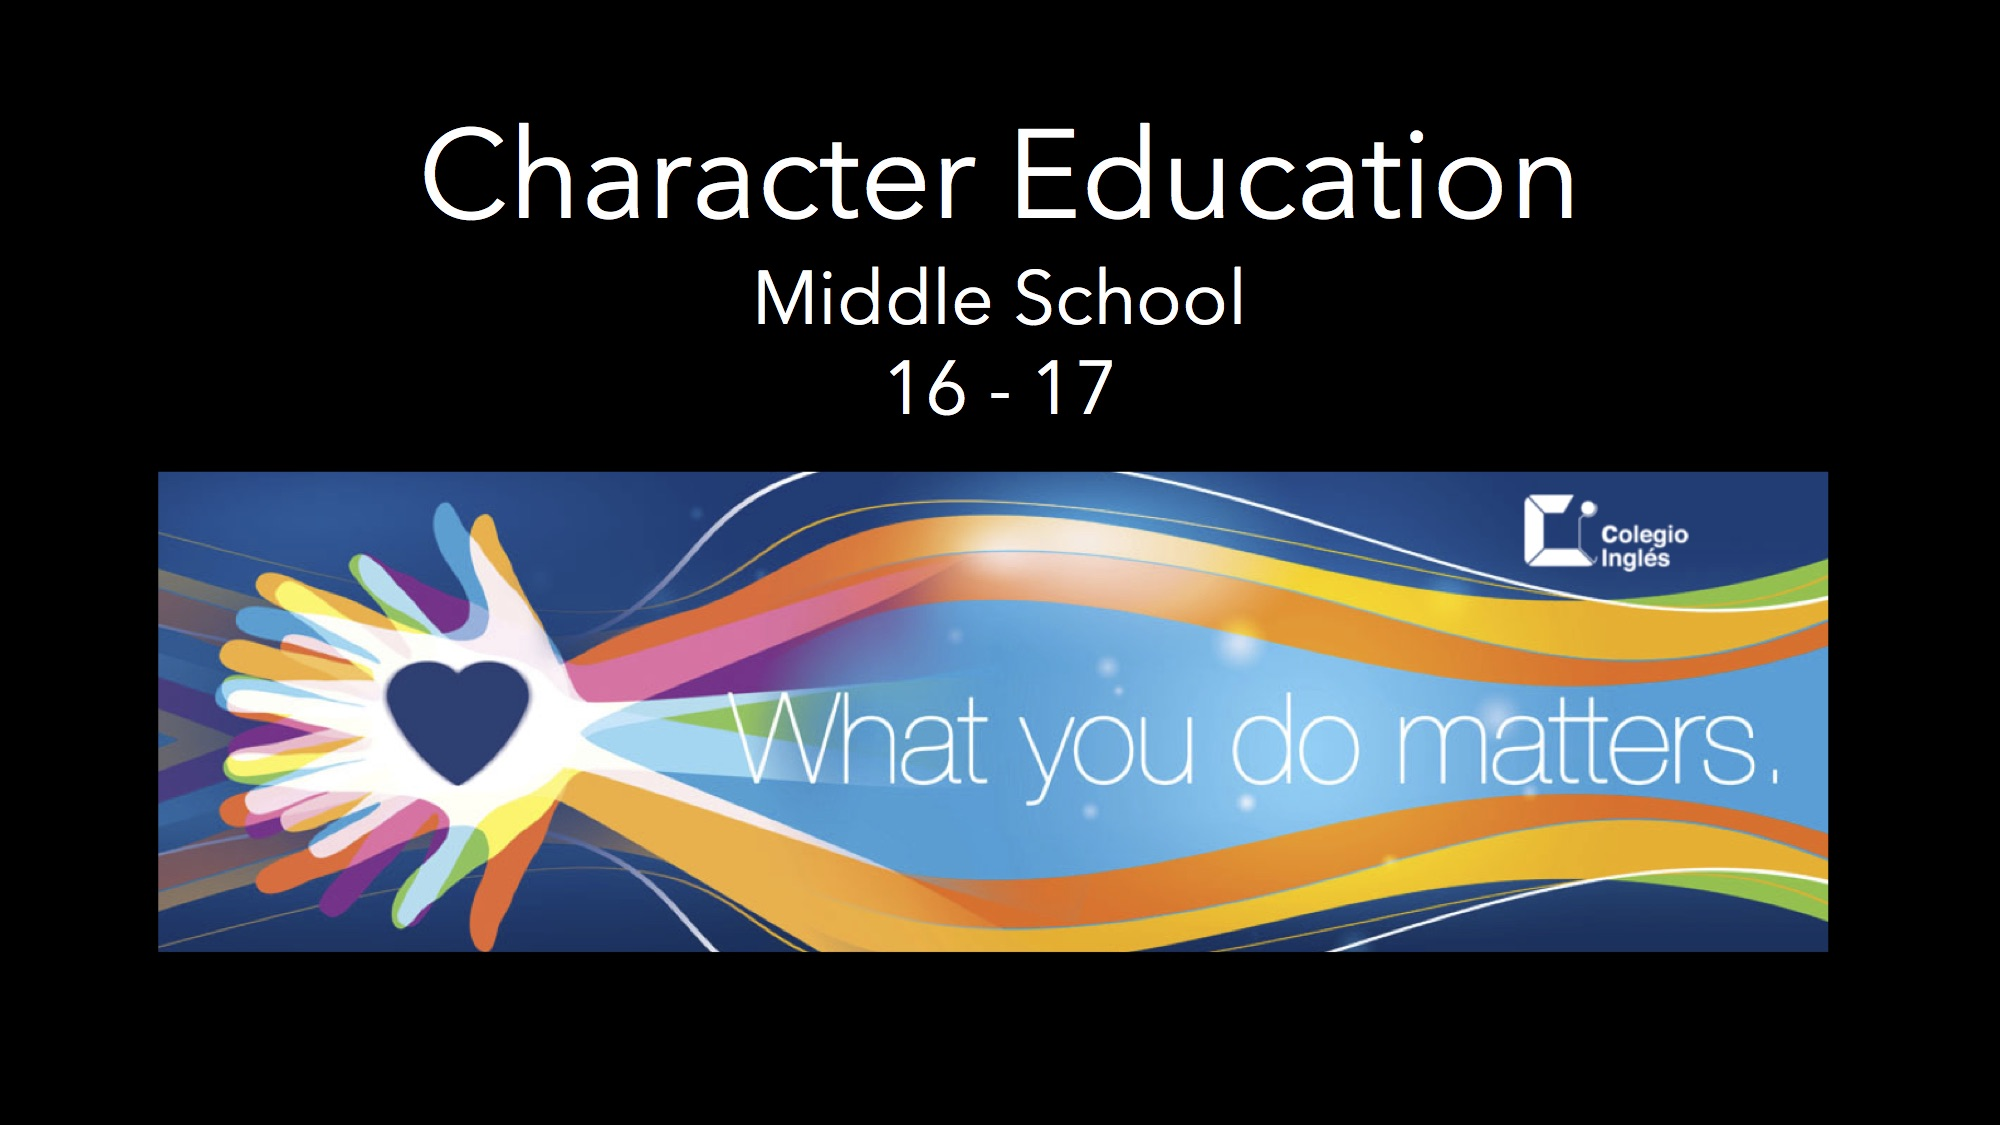 MS Character Education video